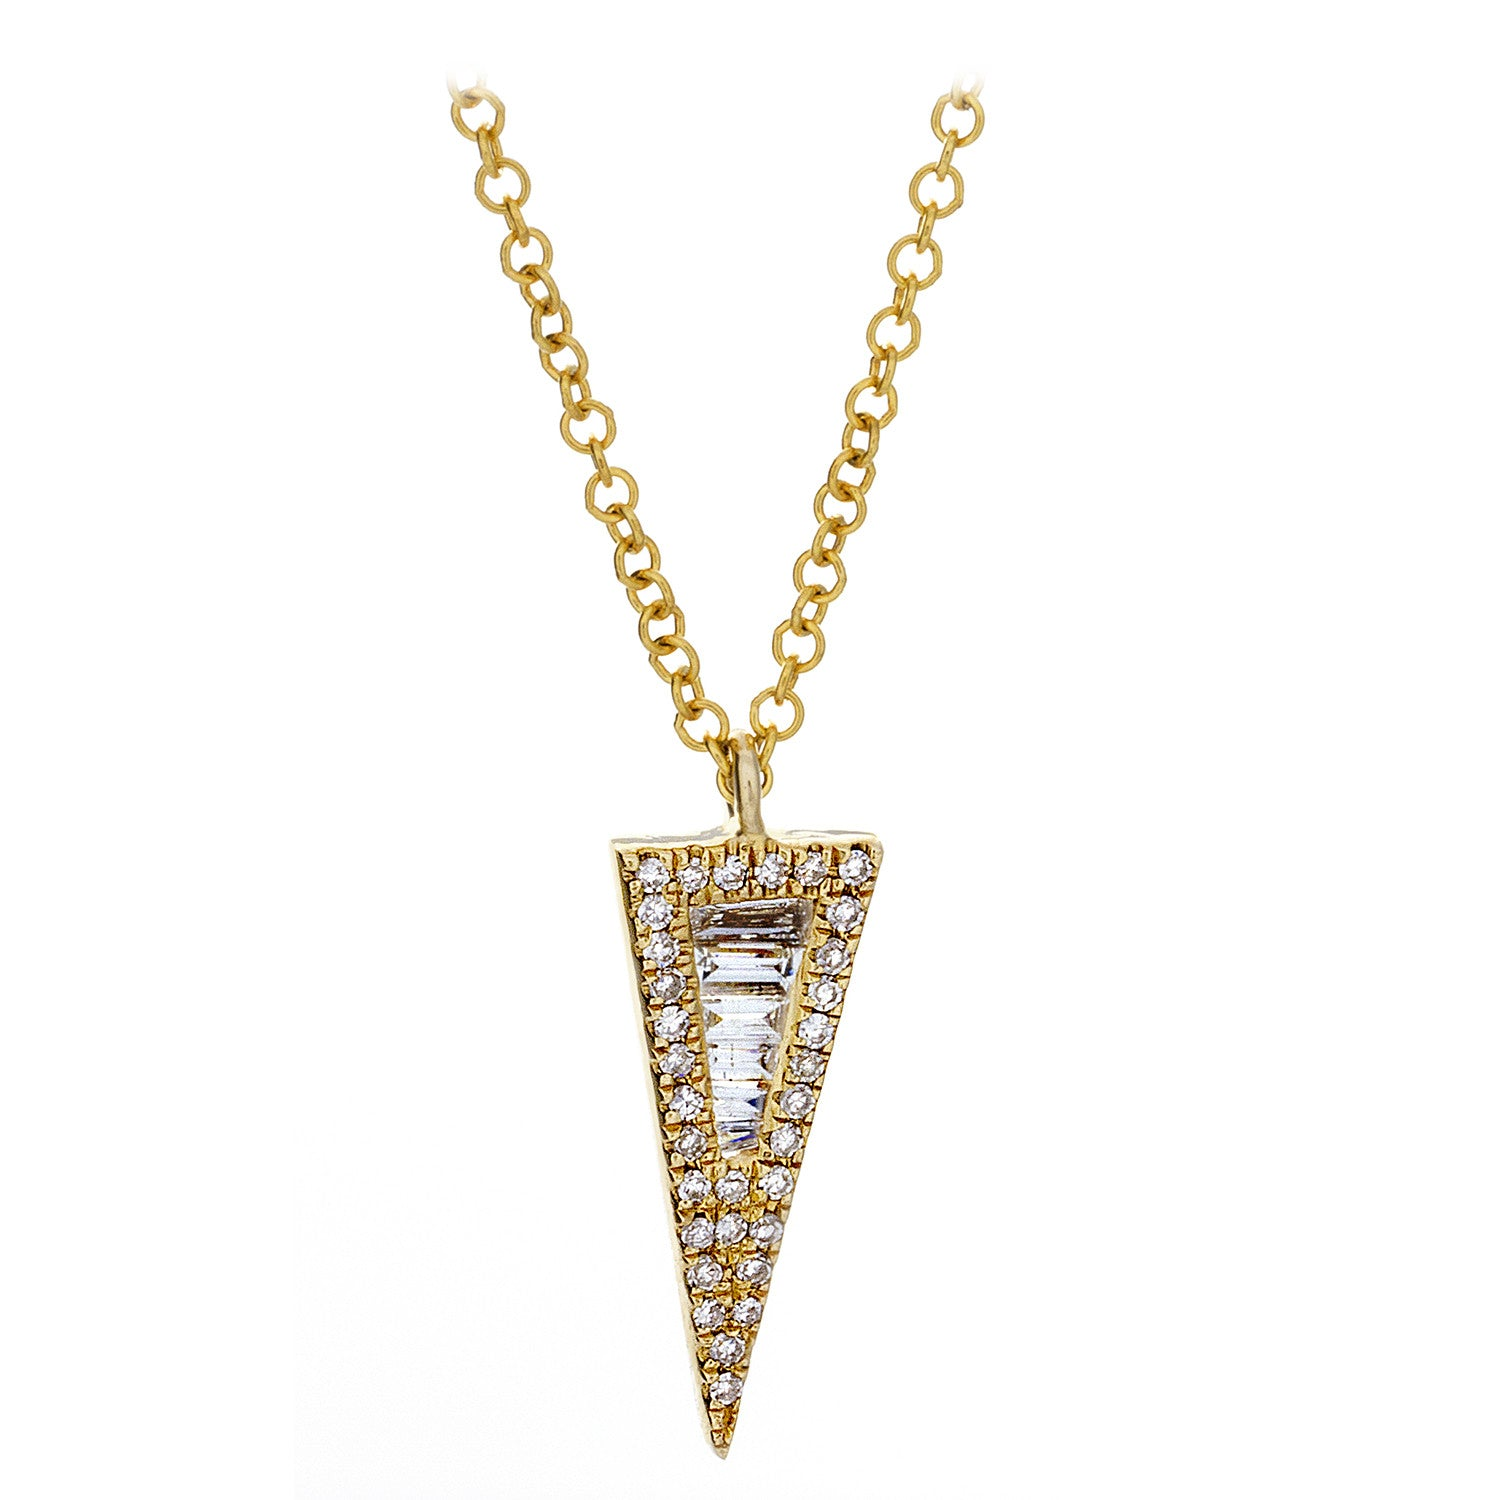 Diamond & 14K Yellow Gold Spike Necklace - SOLD/CAN BE SPECIAL ORDERED WITH 4-6 WEEKS DELIVERY TIME FRAME